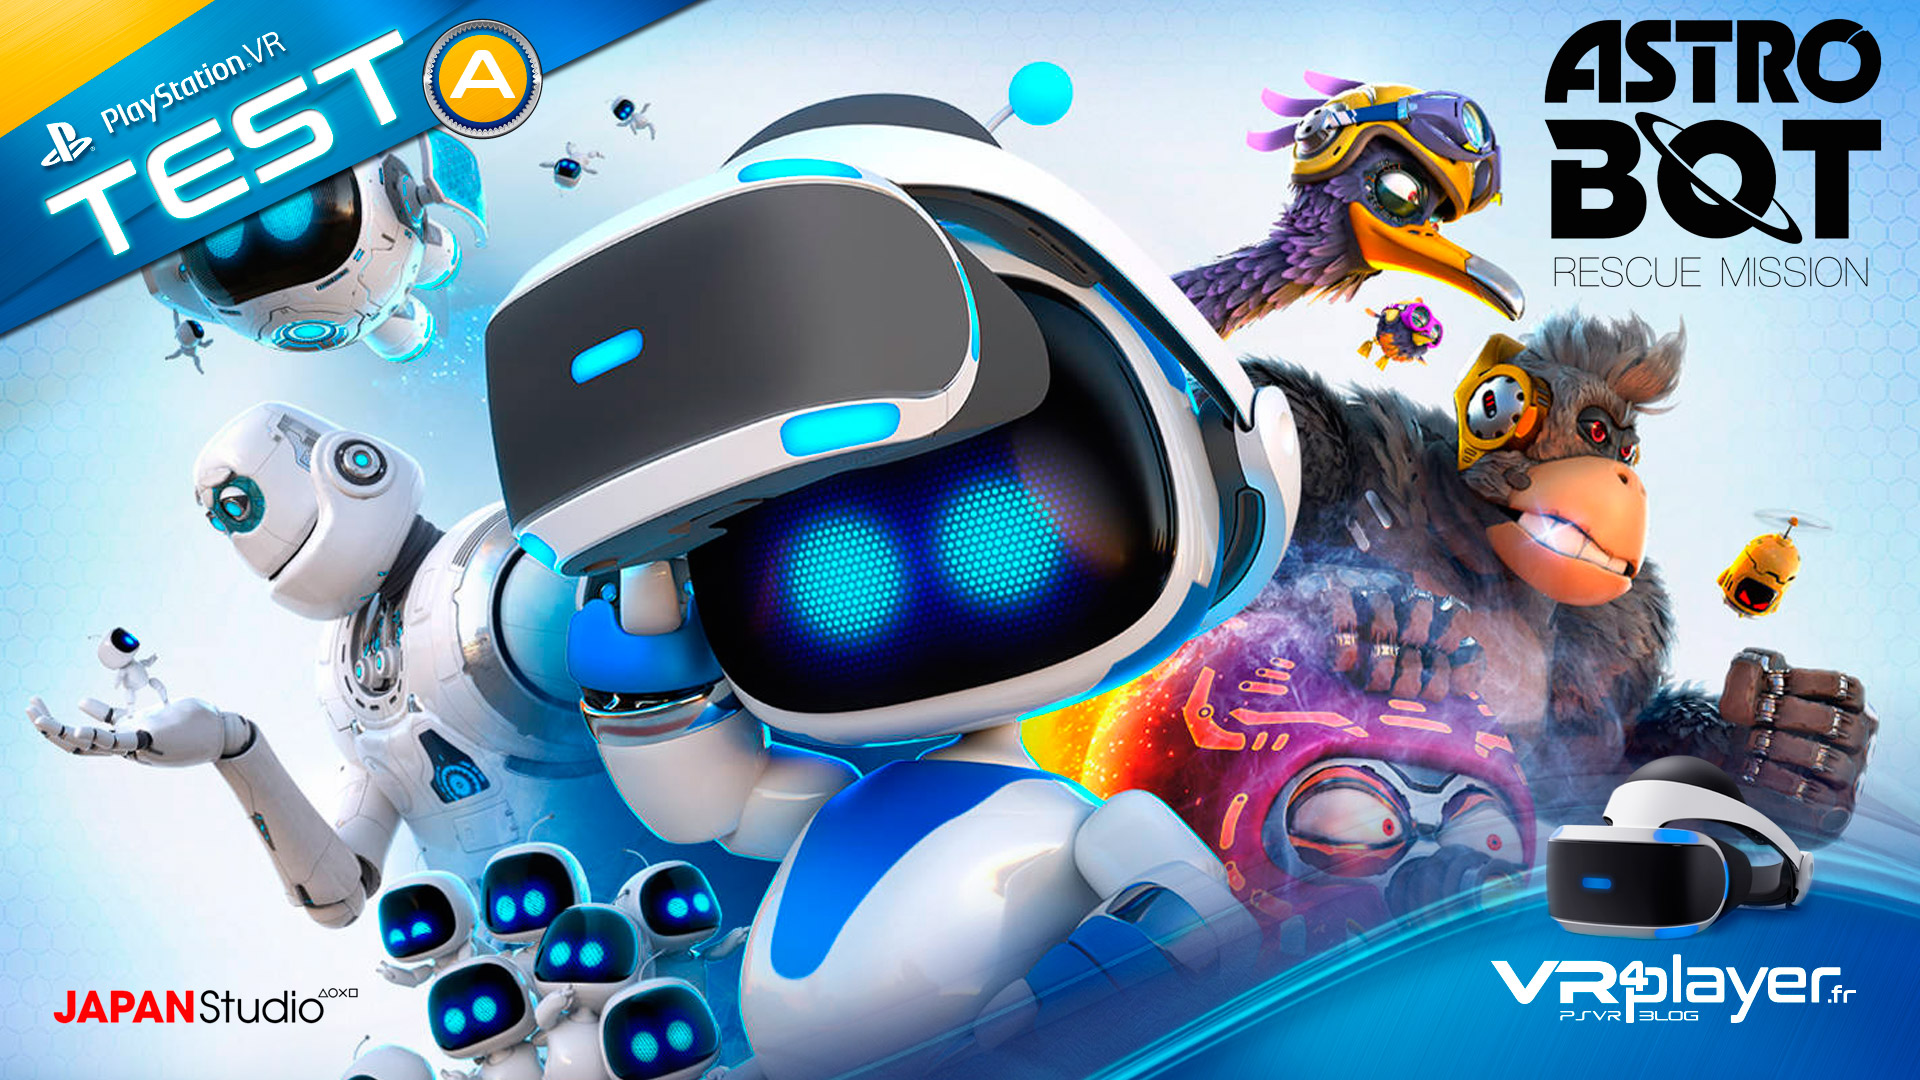 Astro Bot test review complet VR4player